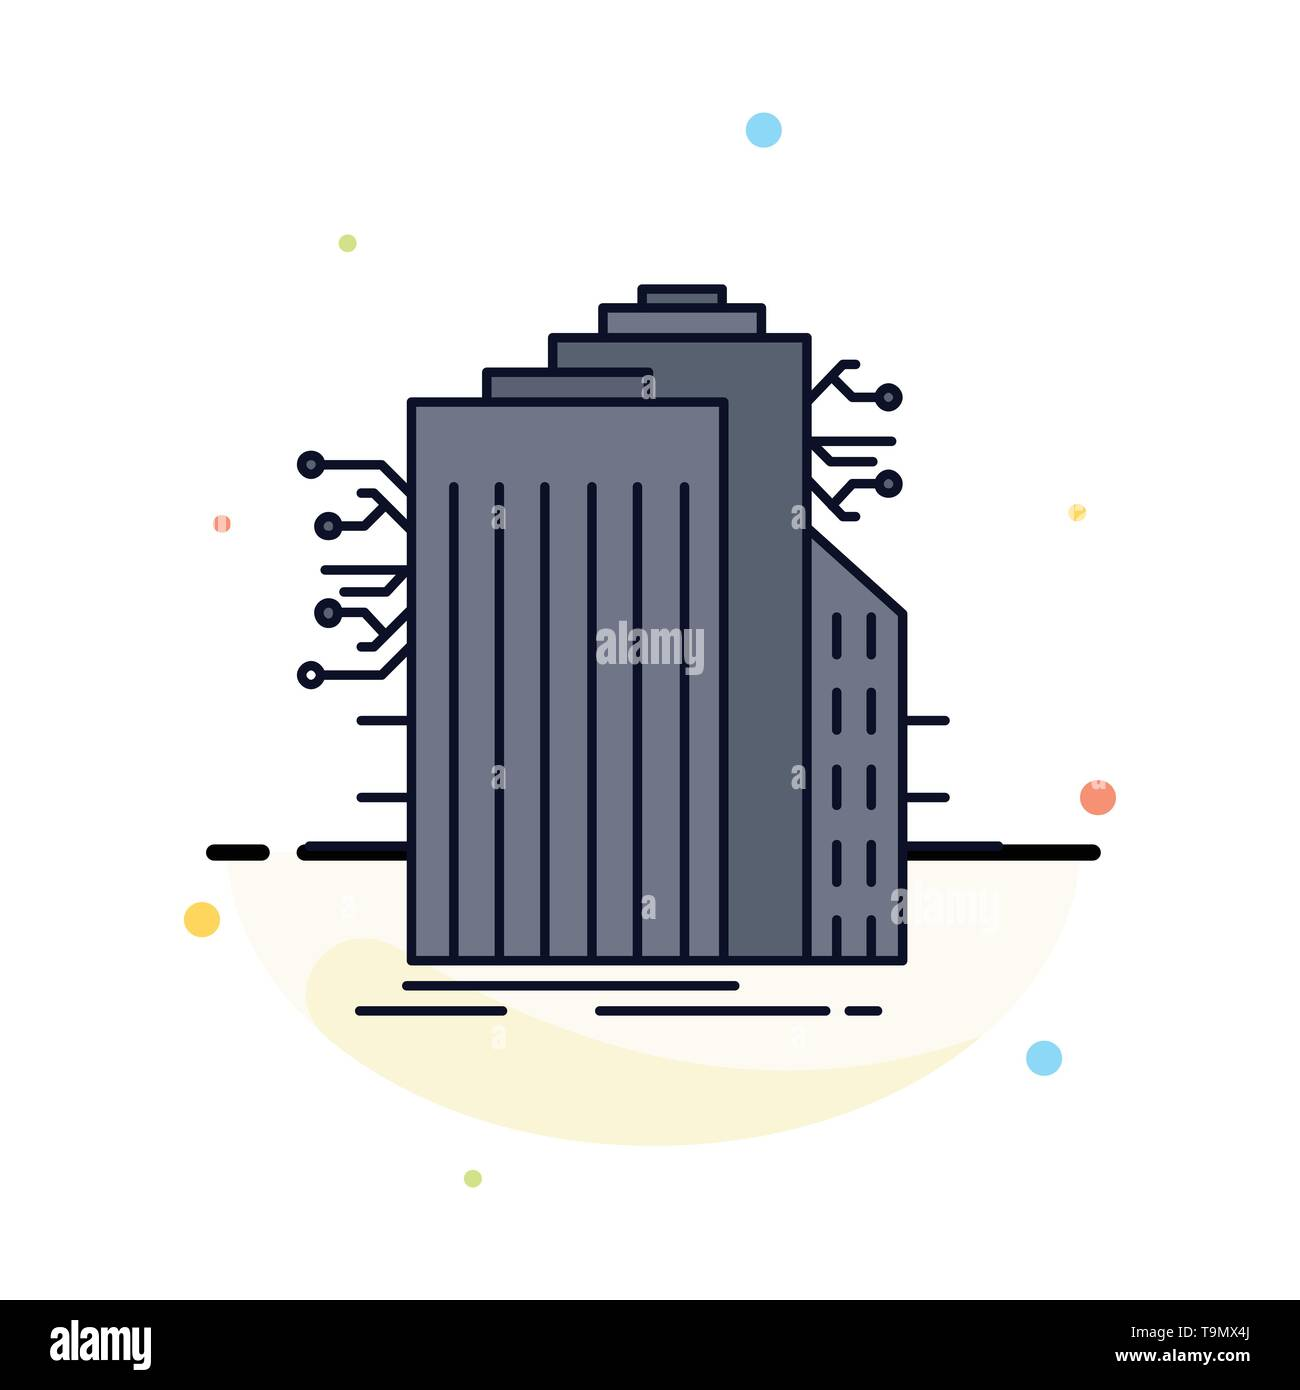 Building, Technology, Smart City, Connected, internet Flat Color Icon Vector - Stock Image